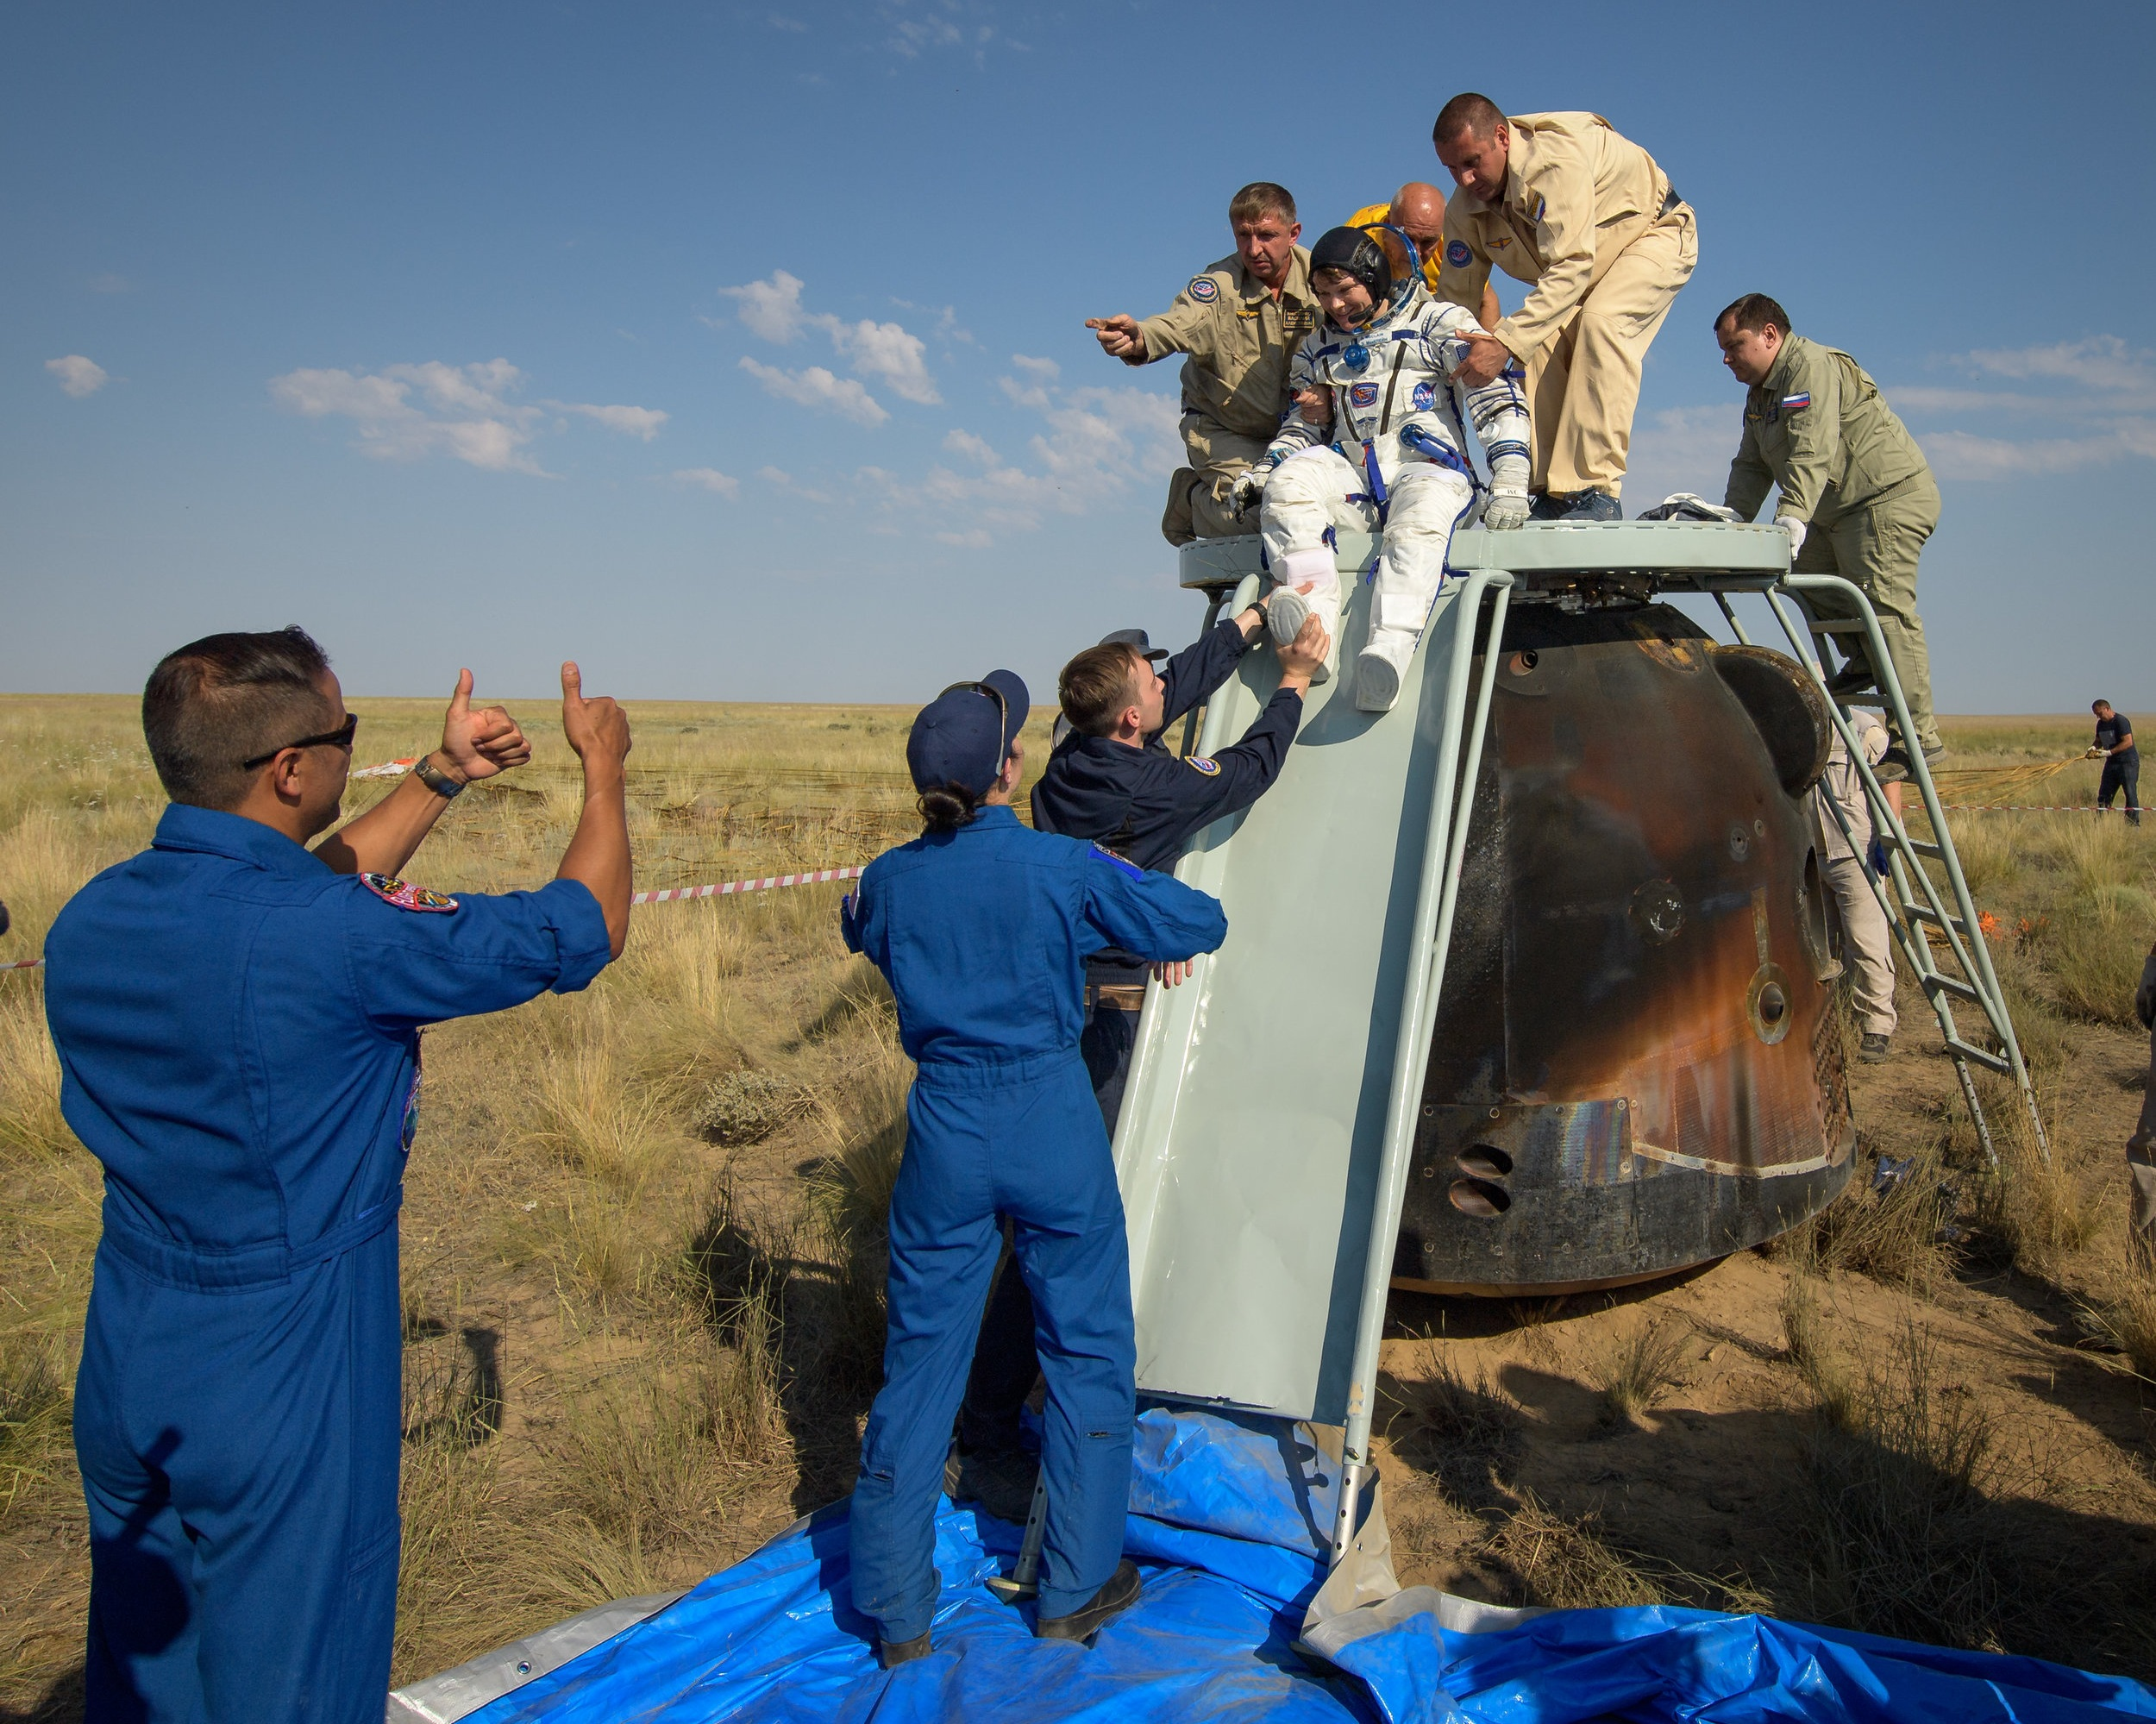 After Oleg Kononenko was extracted from the capsule, Anne McClain was removed. This would be followed by David Saint-Jacques. Credit: Bill Ingalls / NASA